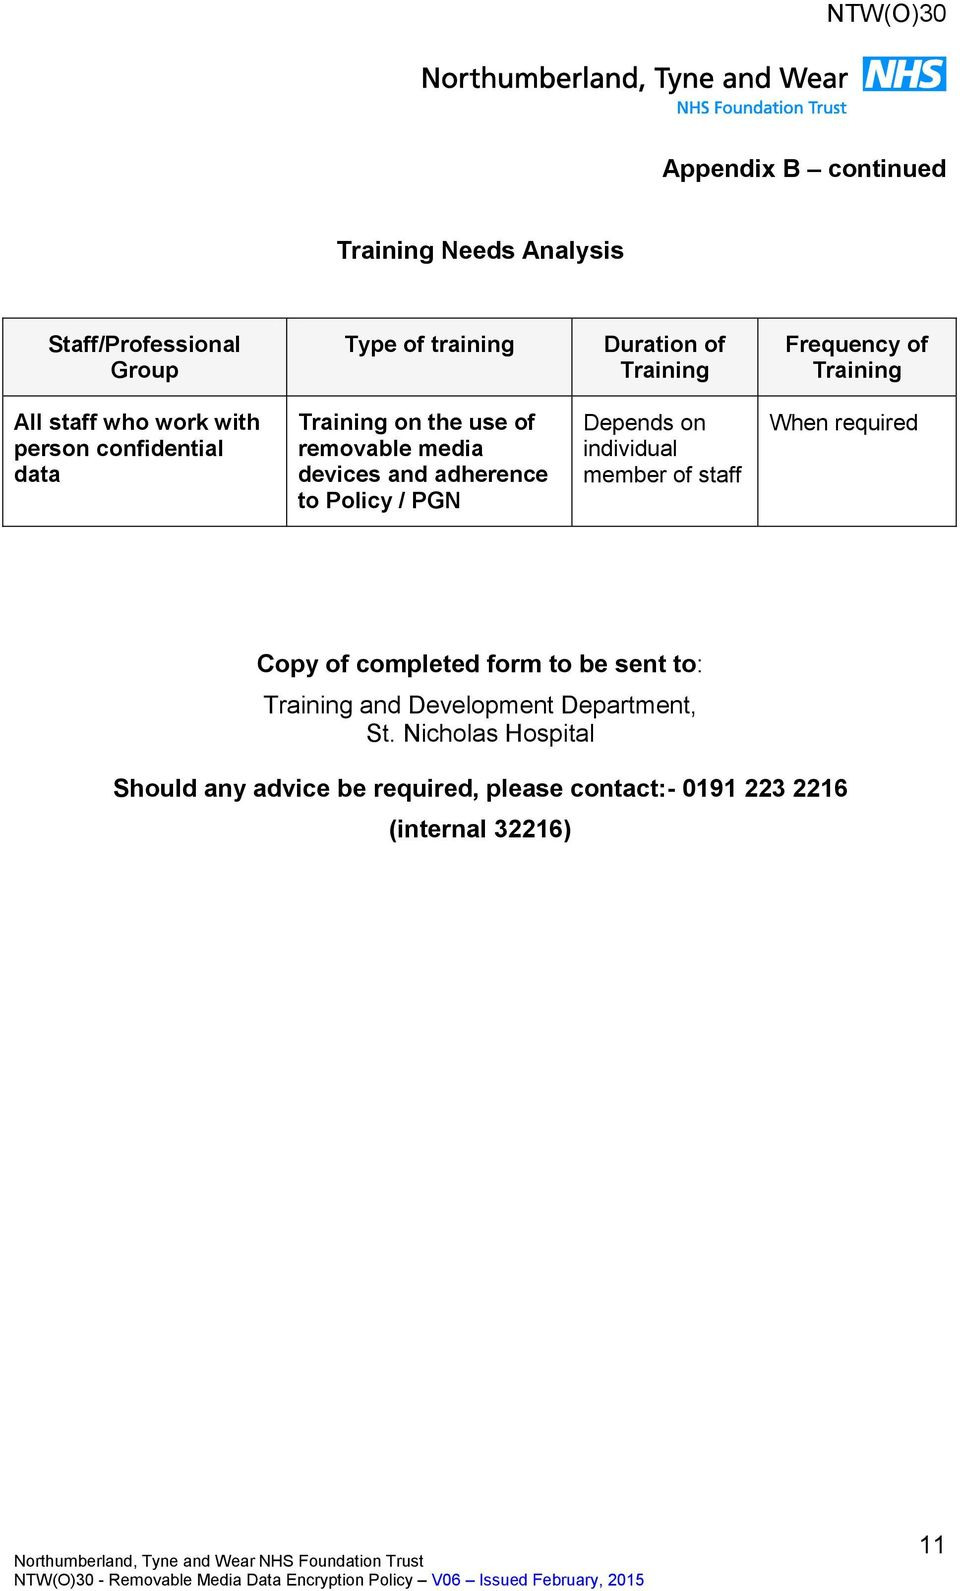 Policy / PGN Depends on individual member of staff When required Copy of completed form to be sent to: Training and